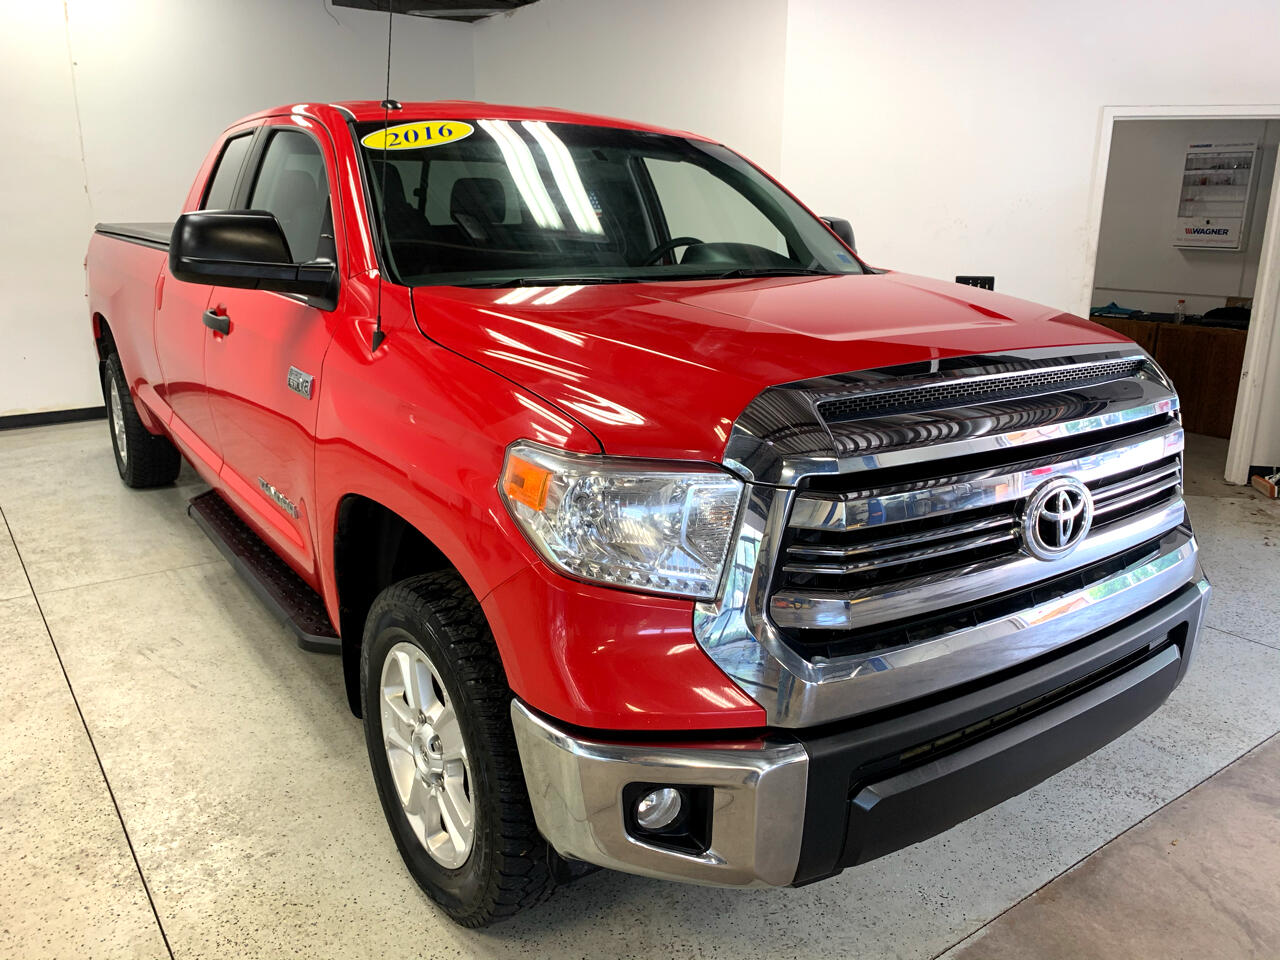 Toyota Tundra SR5 5.7L V8 Double Cab 4WD Long Bed 2016